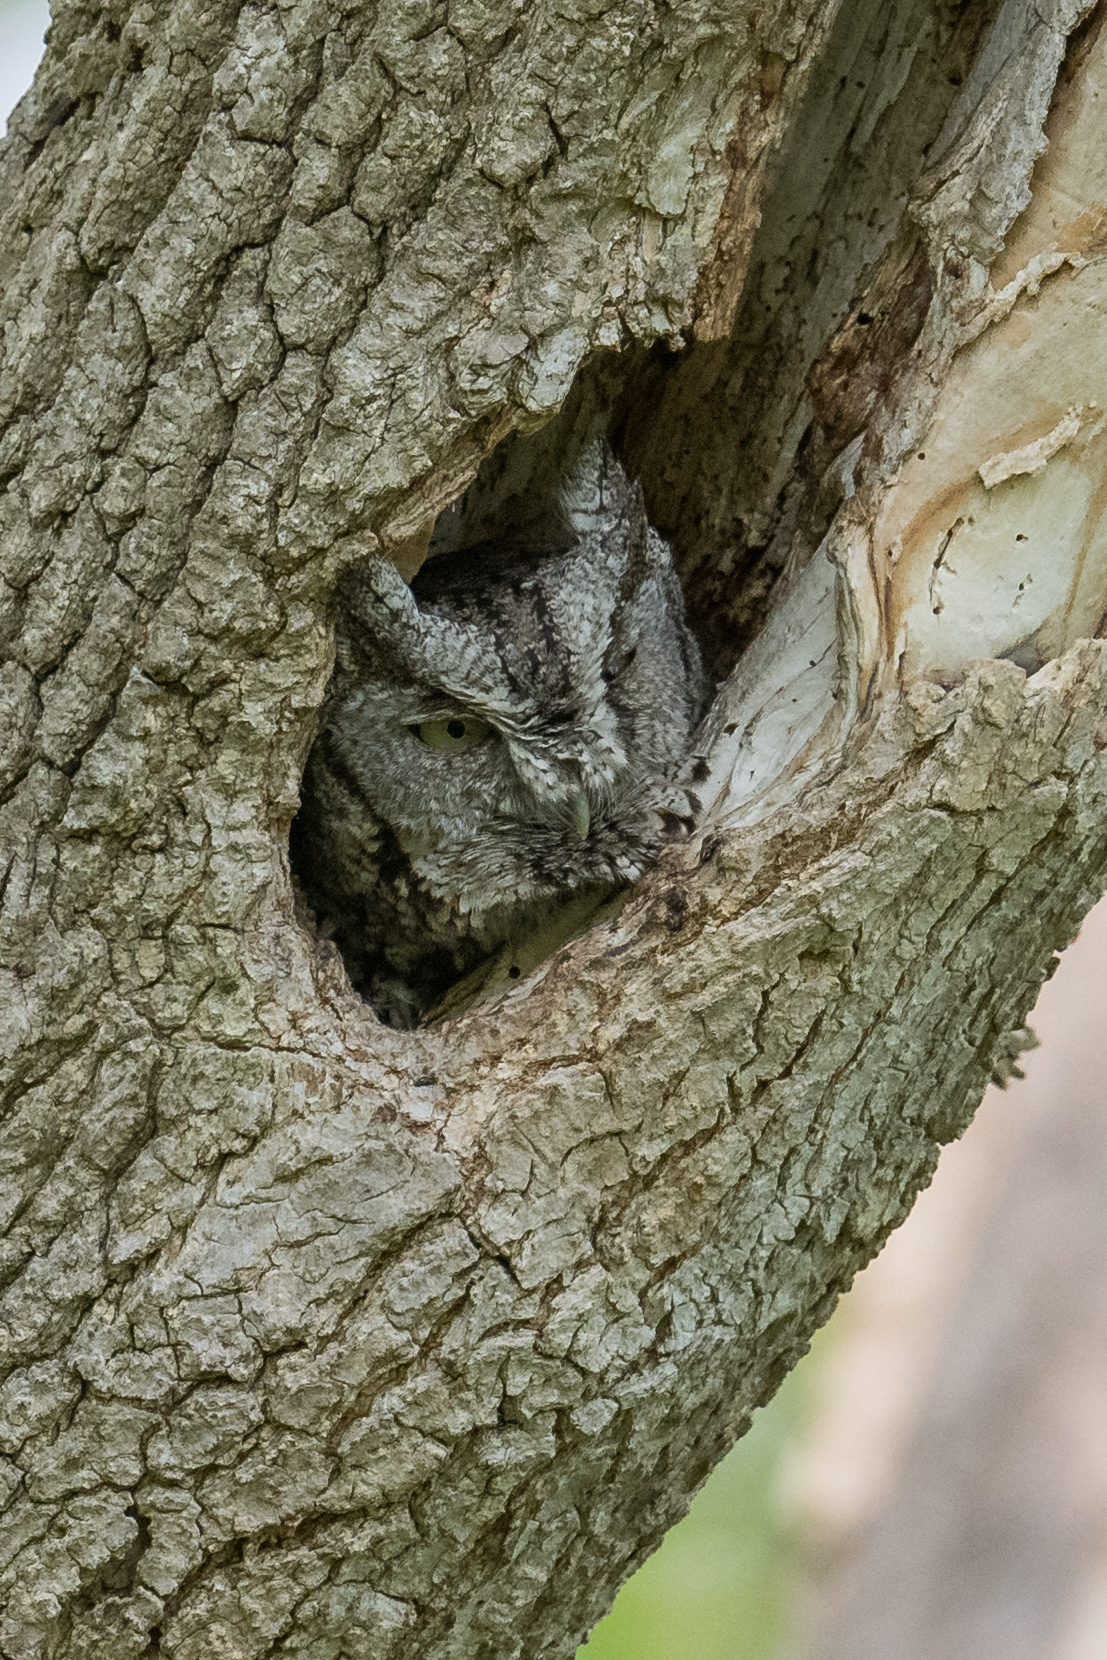 Eastern Screech-Owl (Megascops asio): Magee Marsh, LUC (OH)